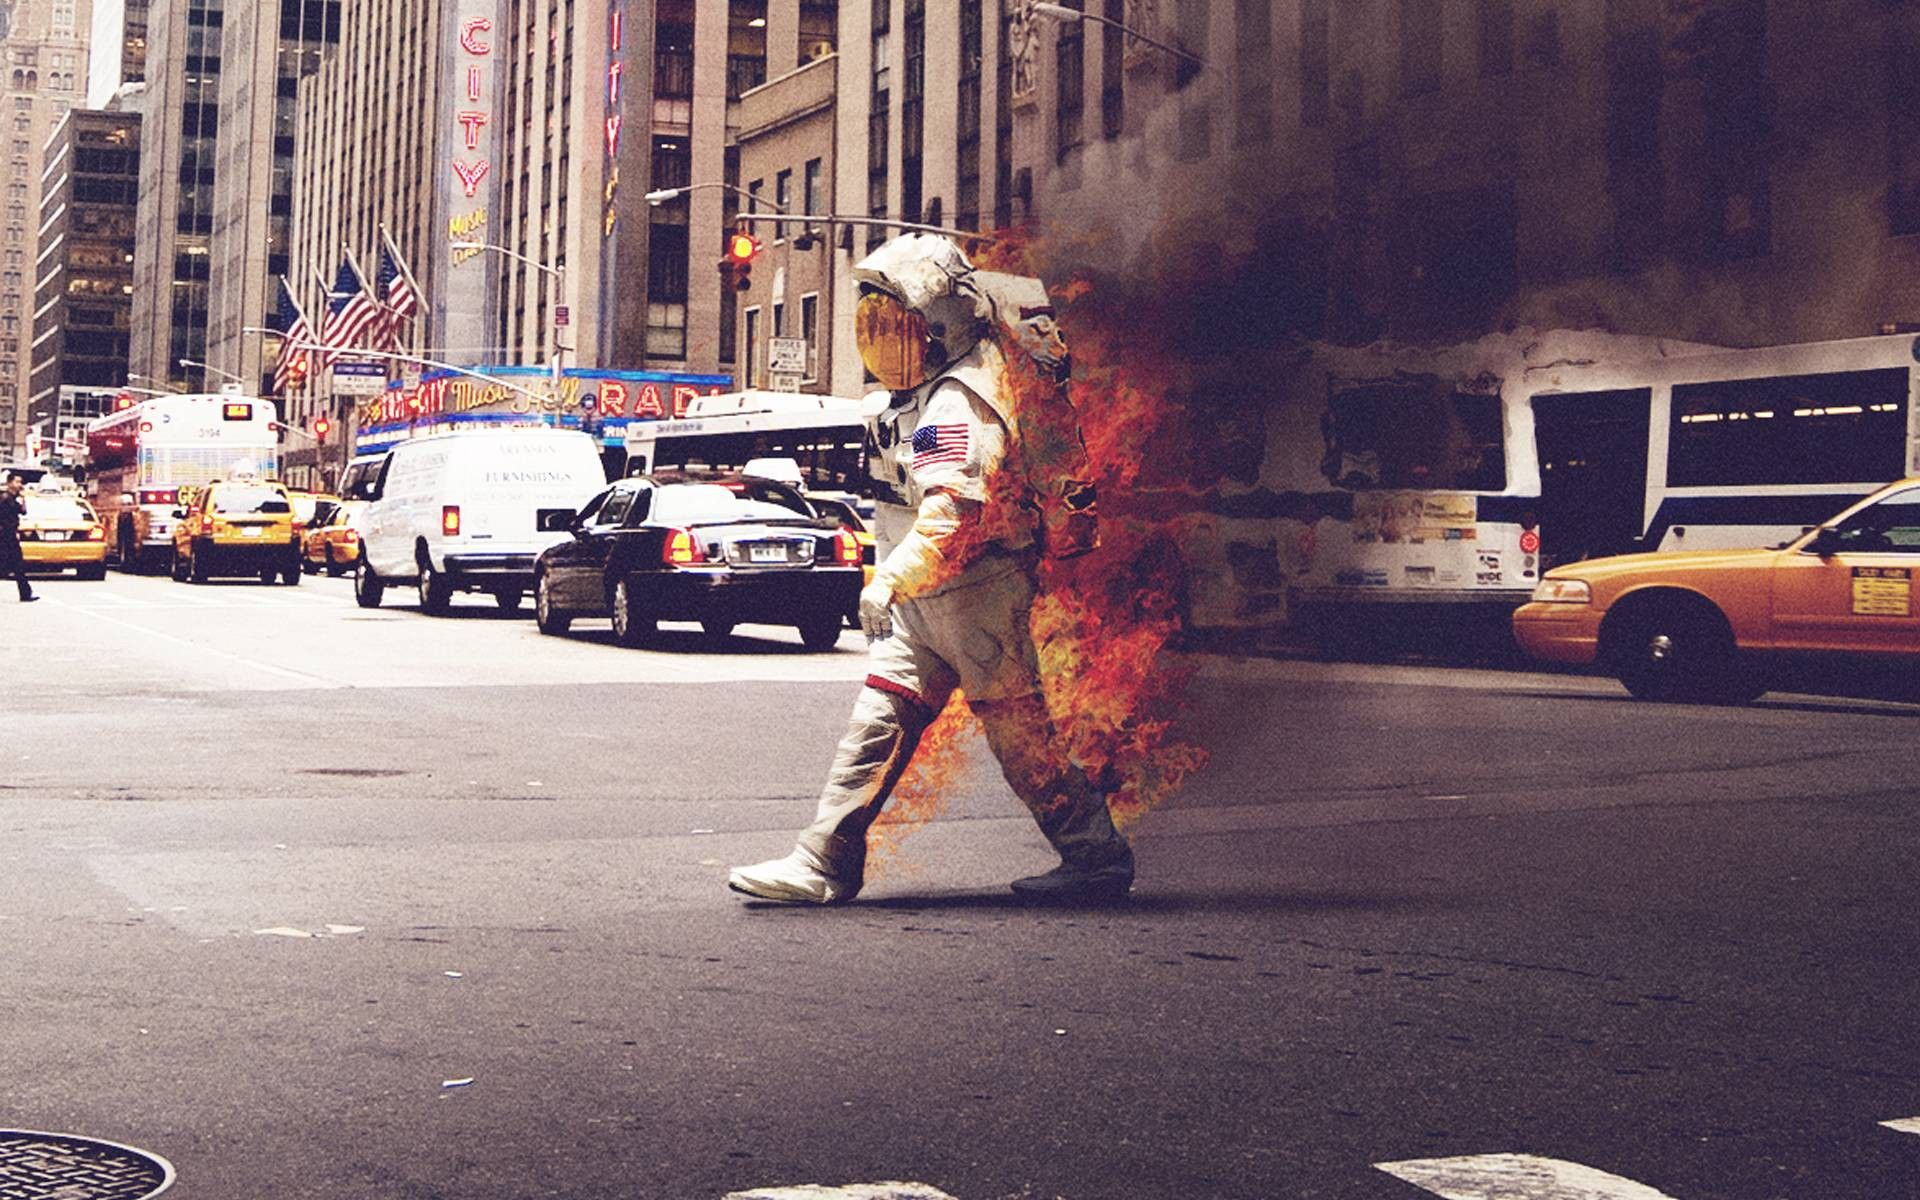 Astronaut On Fire Wallpapers - Top Free Astronaut On Fire